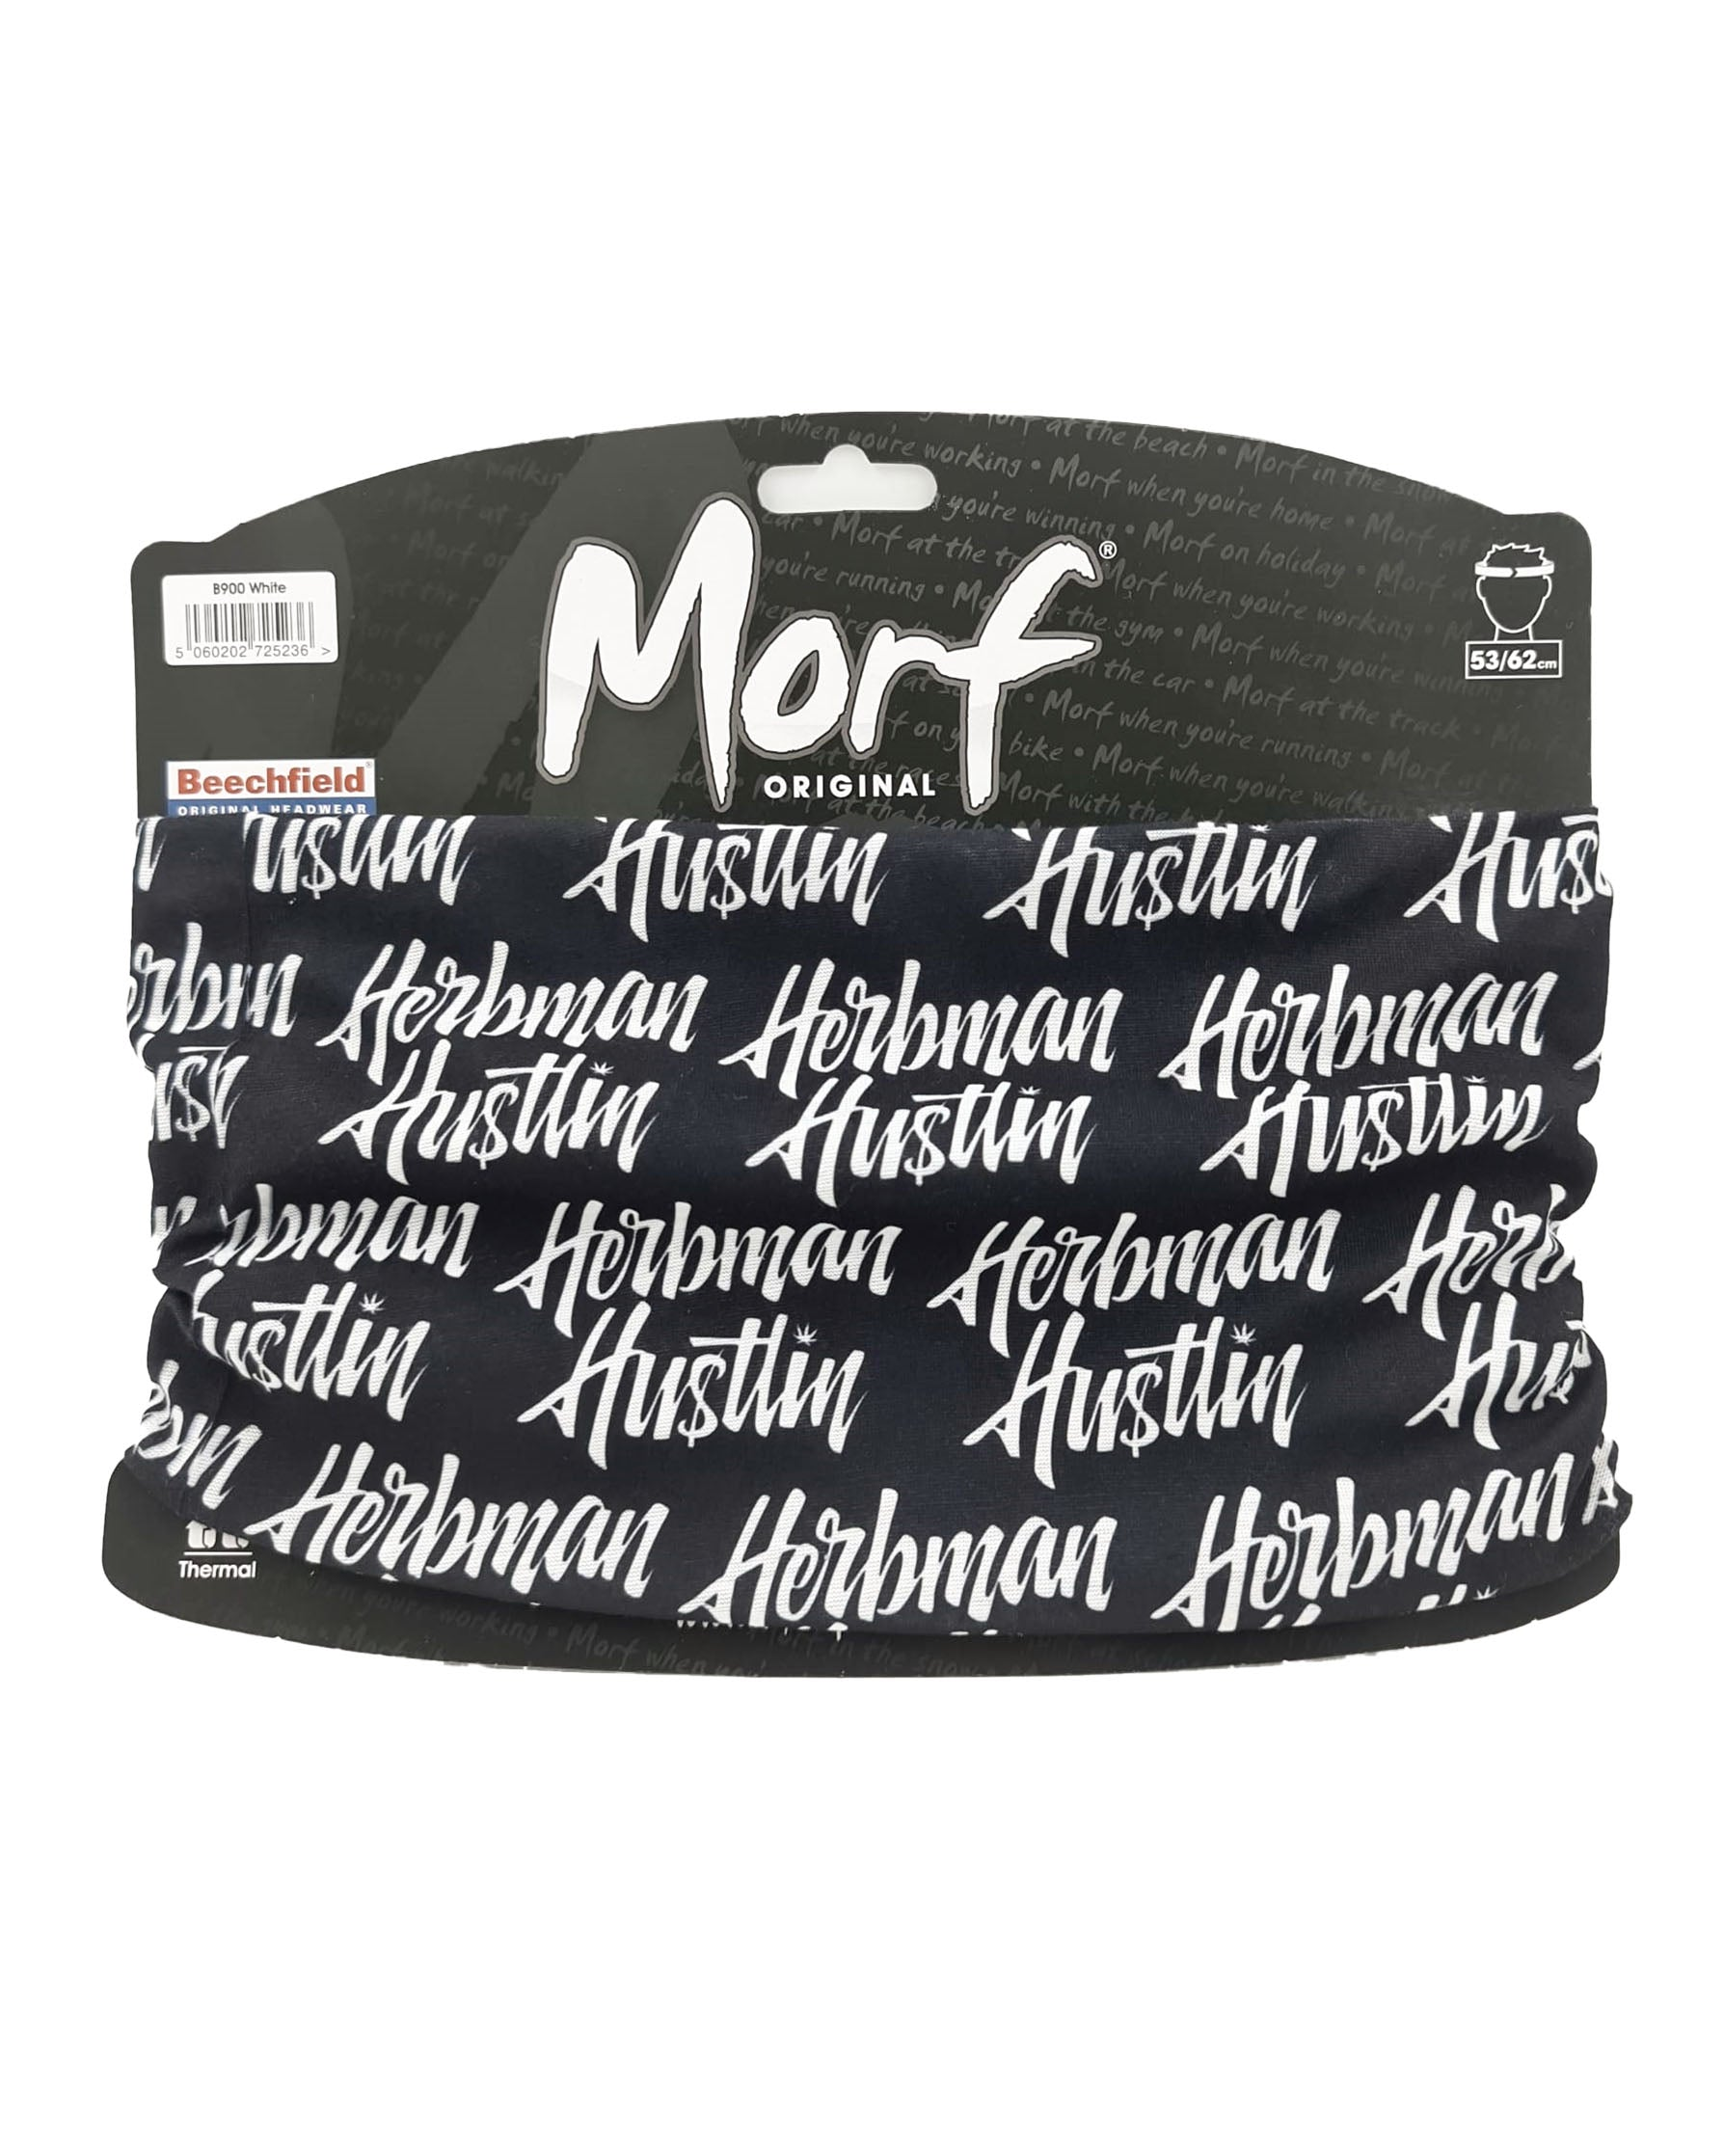 Herbman Hustlin Script Face Covering/Bandana - Black/White